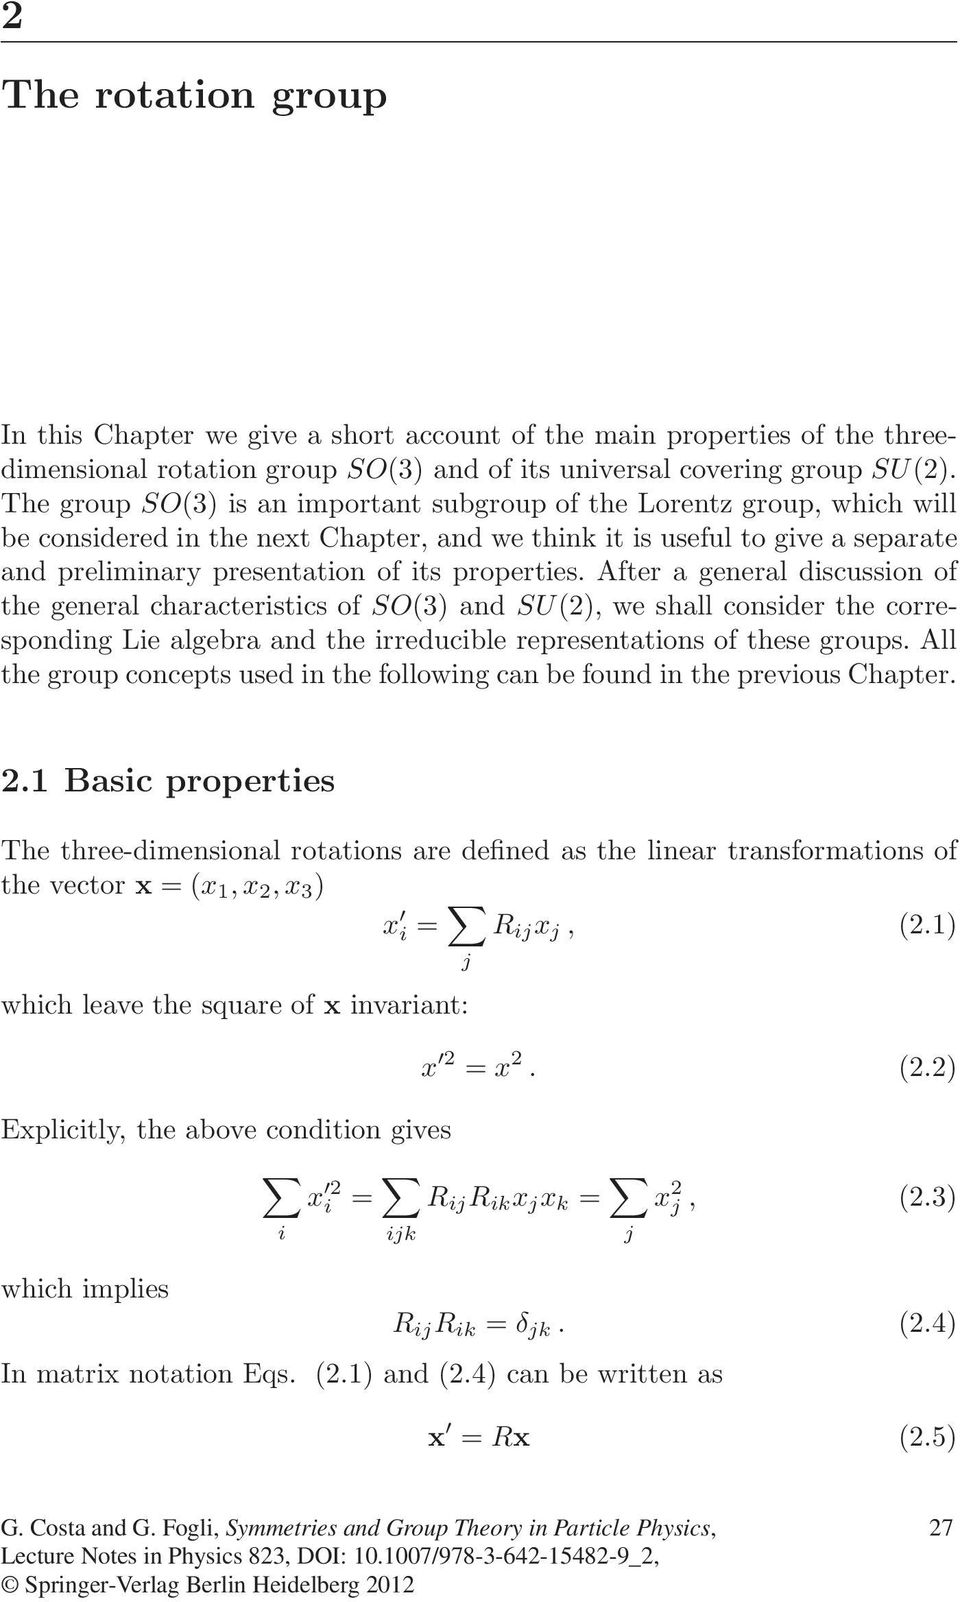 properties. After a general discussion of the general characteristics of SO(3) and SU(2), we shall consider the corresponding Lie algebra and the irreducible representations of these groups.